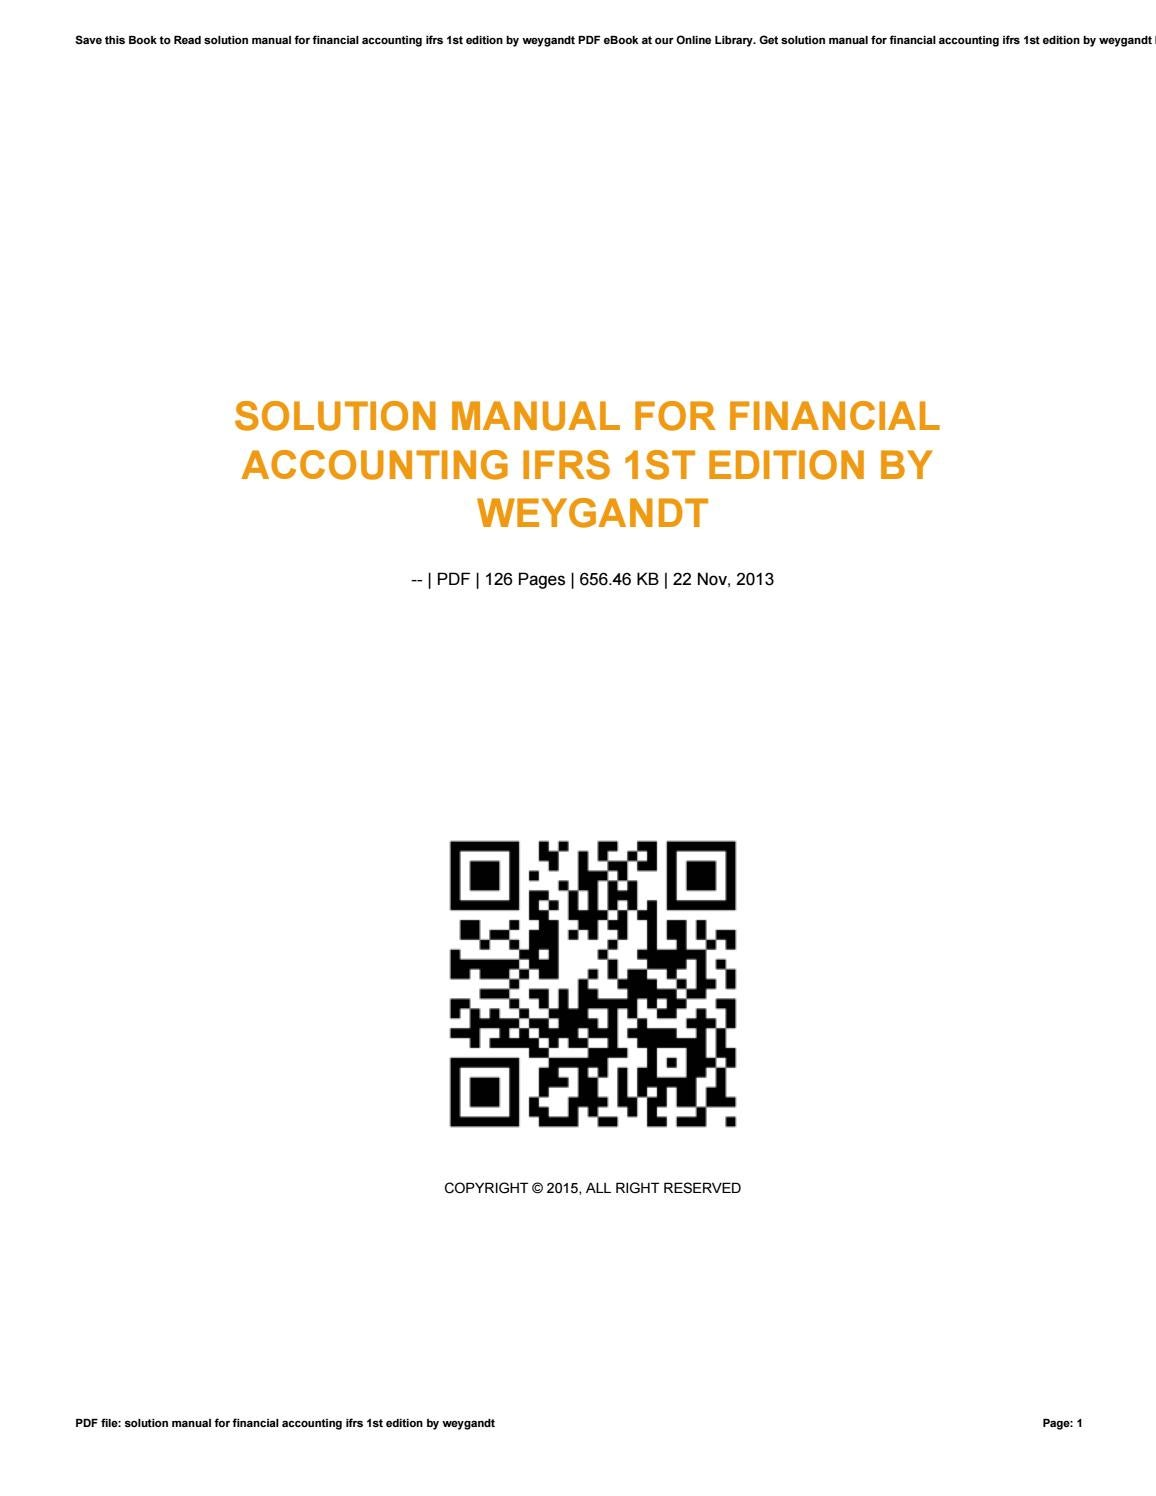 Solution Manual For Financial Accounting Ifrs 1st Edition By